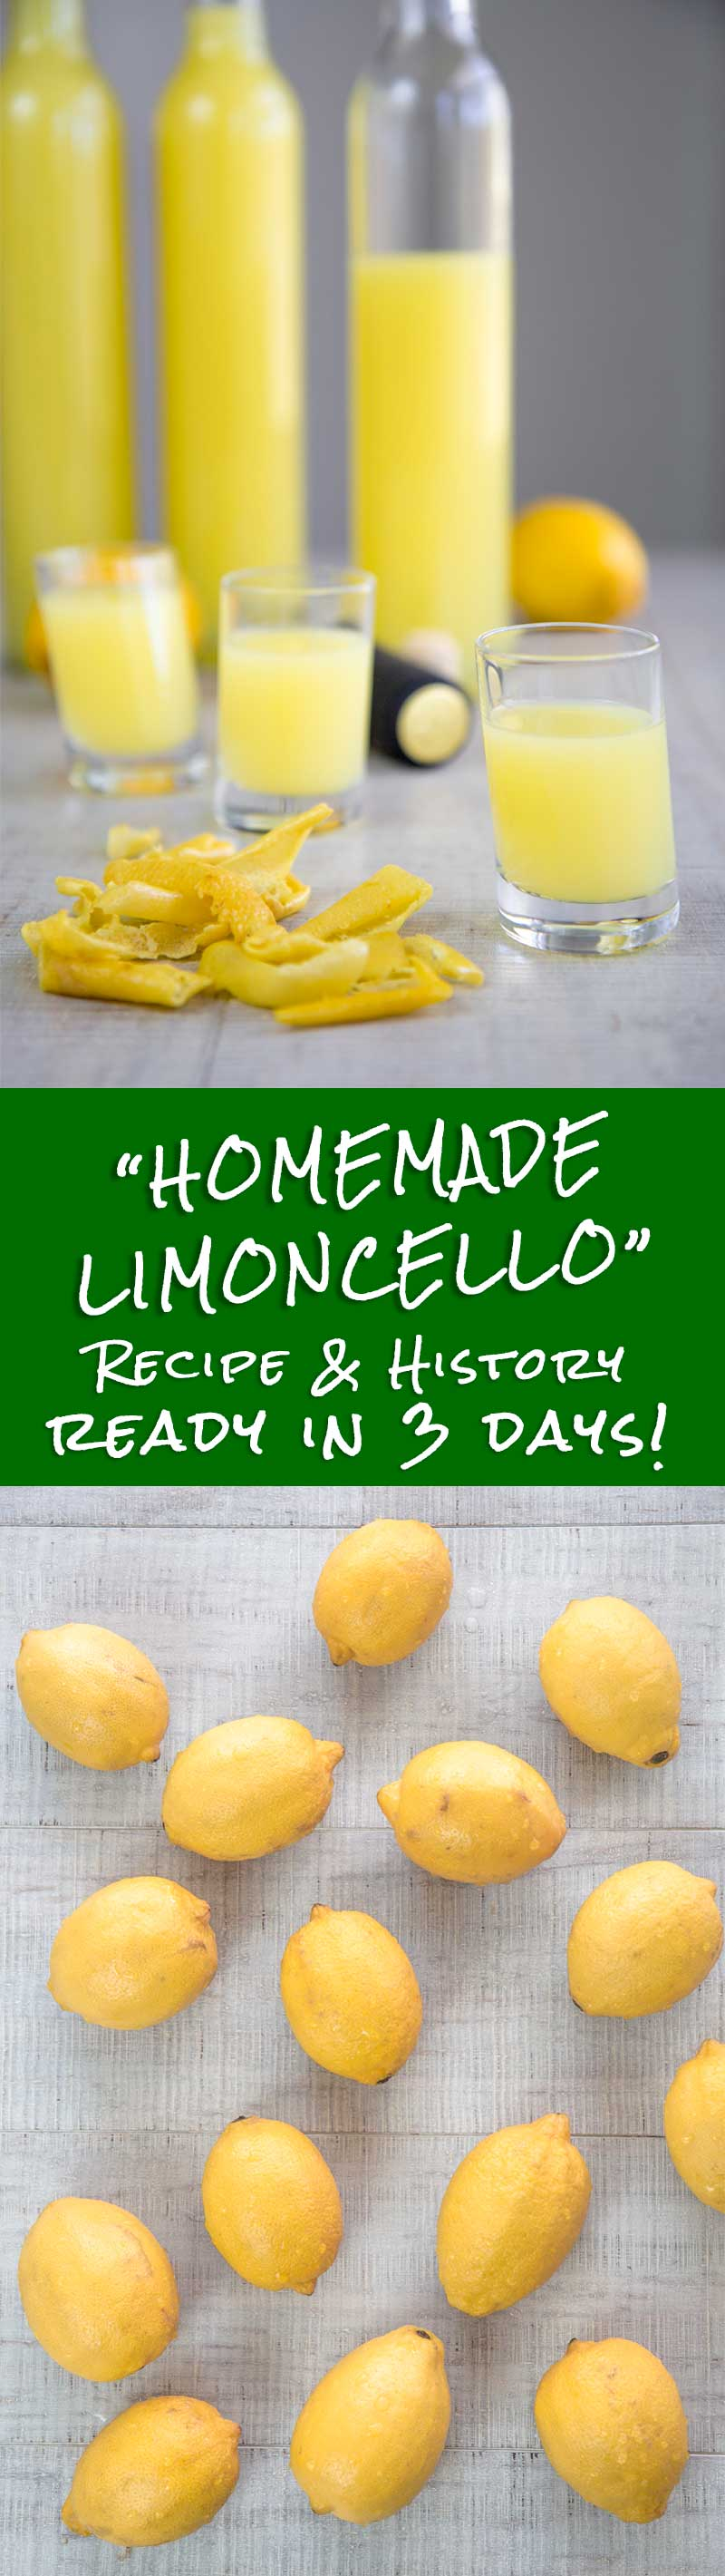 Homemade Limoncello Recipe And History Ready In 3 Days